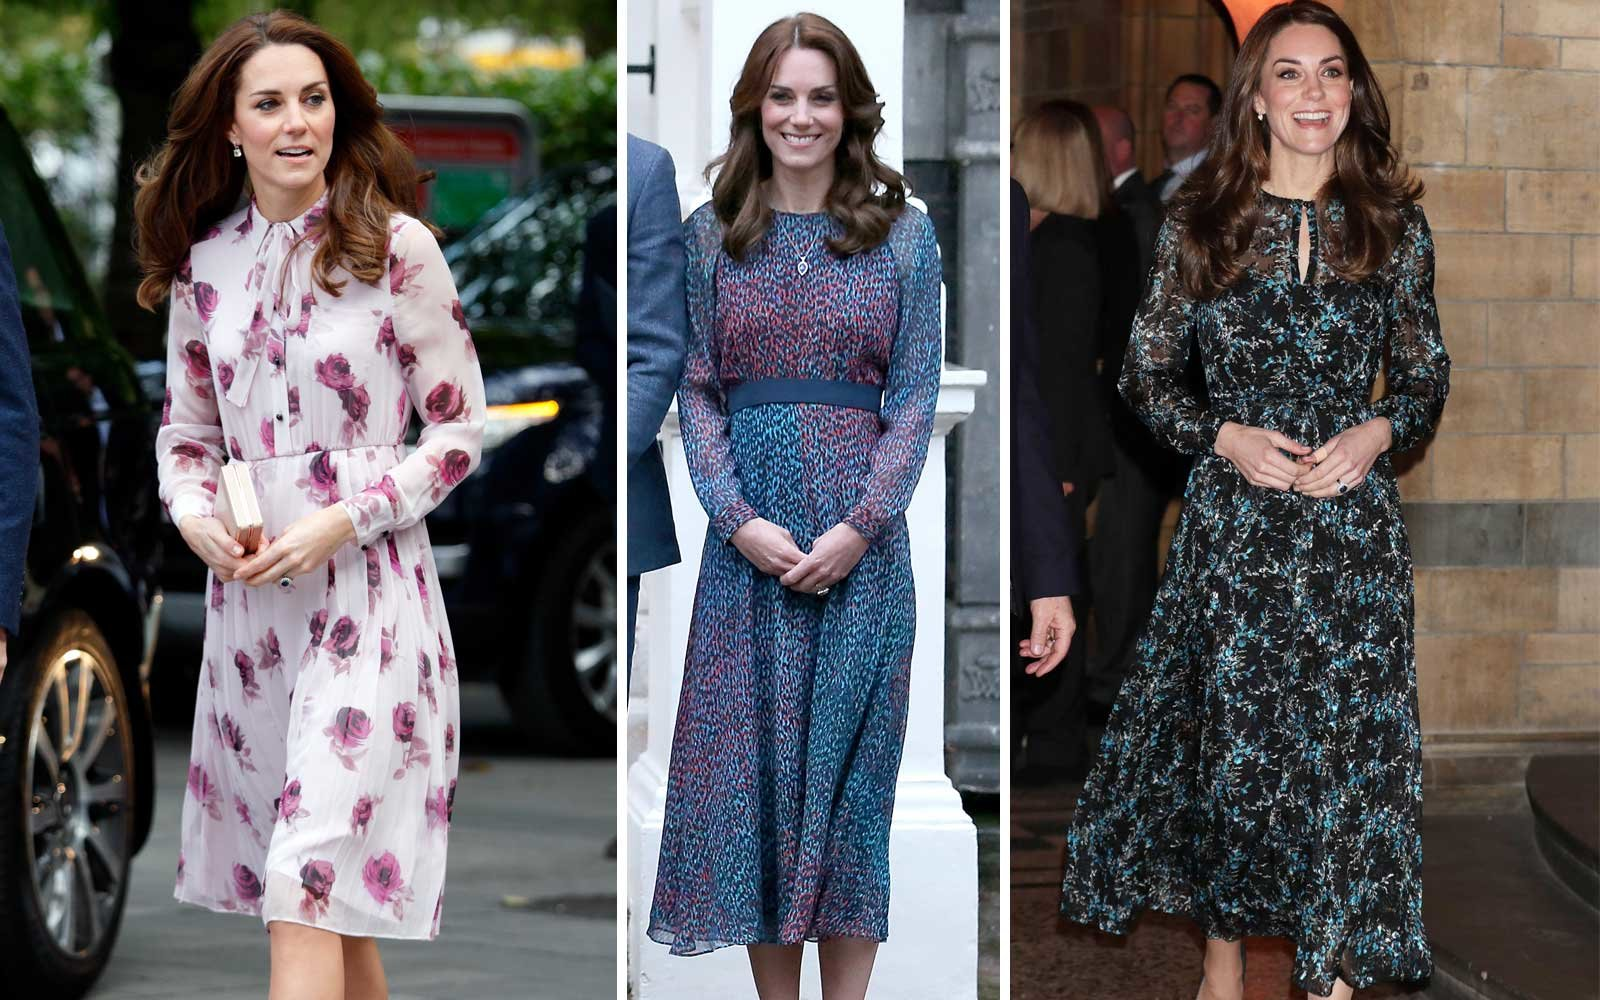 d80135d930f169 Outfit Ideas Inspired by Kate Middleton s Travel Style